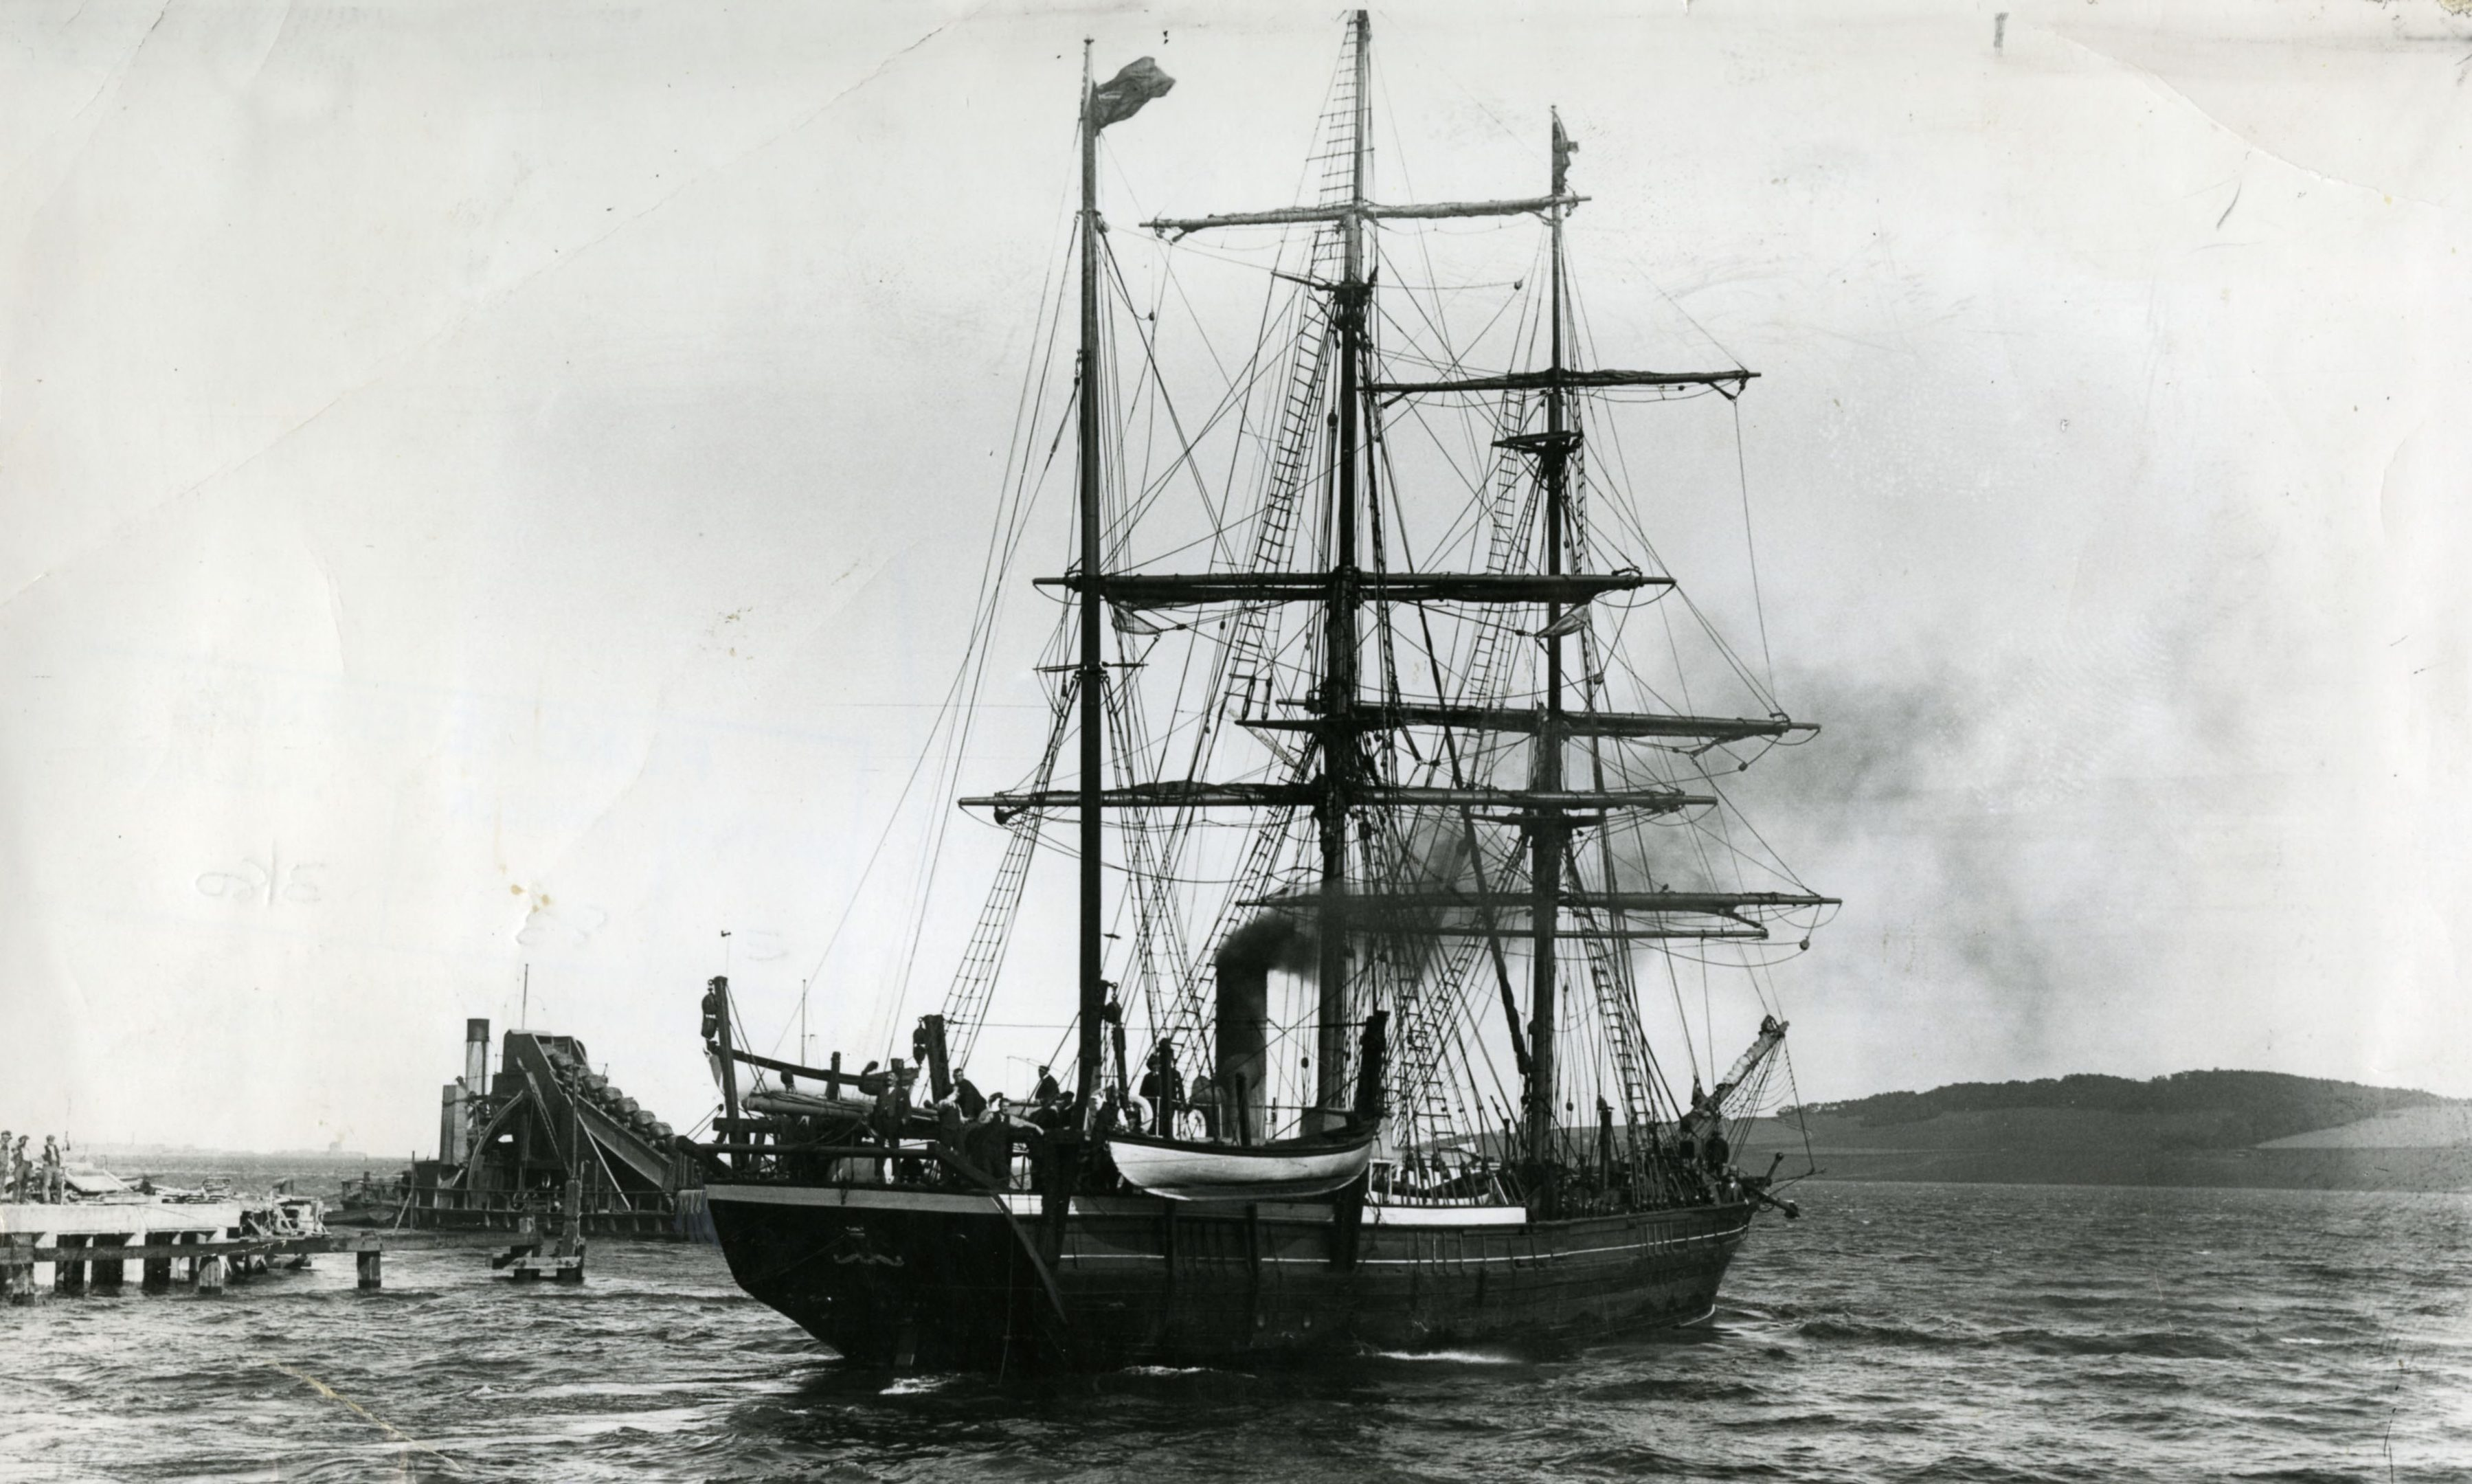 The Scotia whaler leaving Dundee. It came to The Snowdrop crew's rescue.